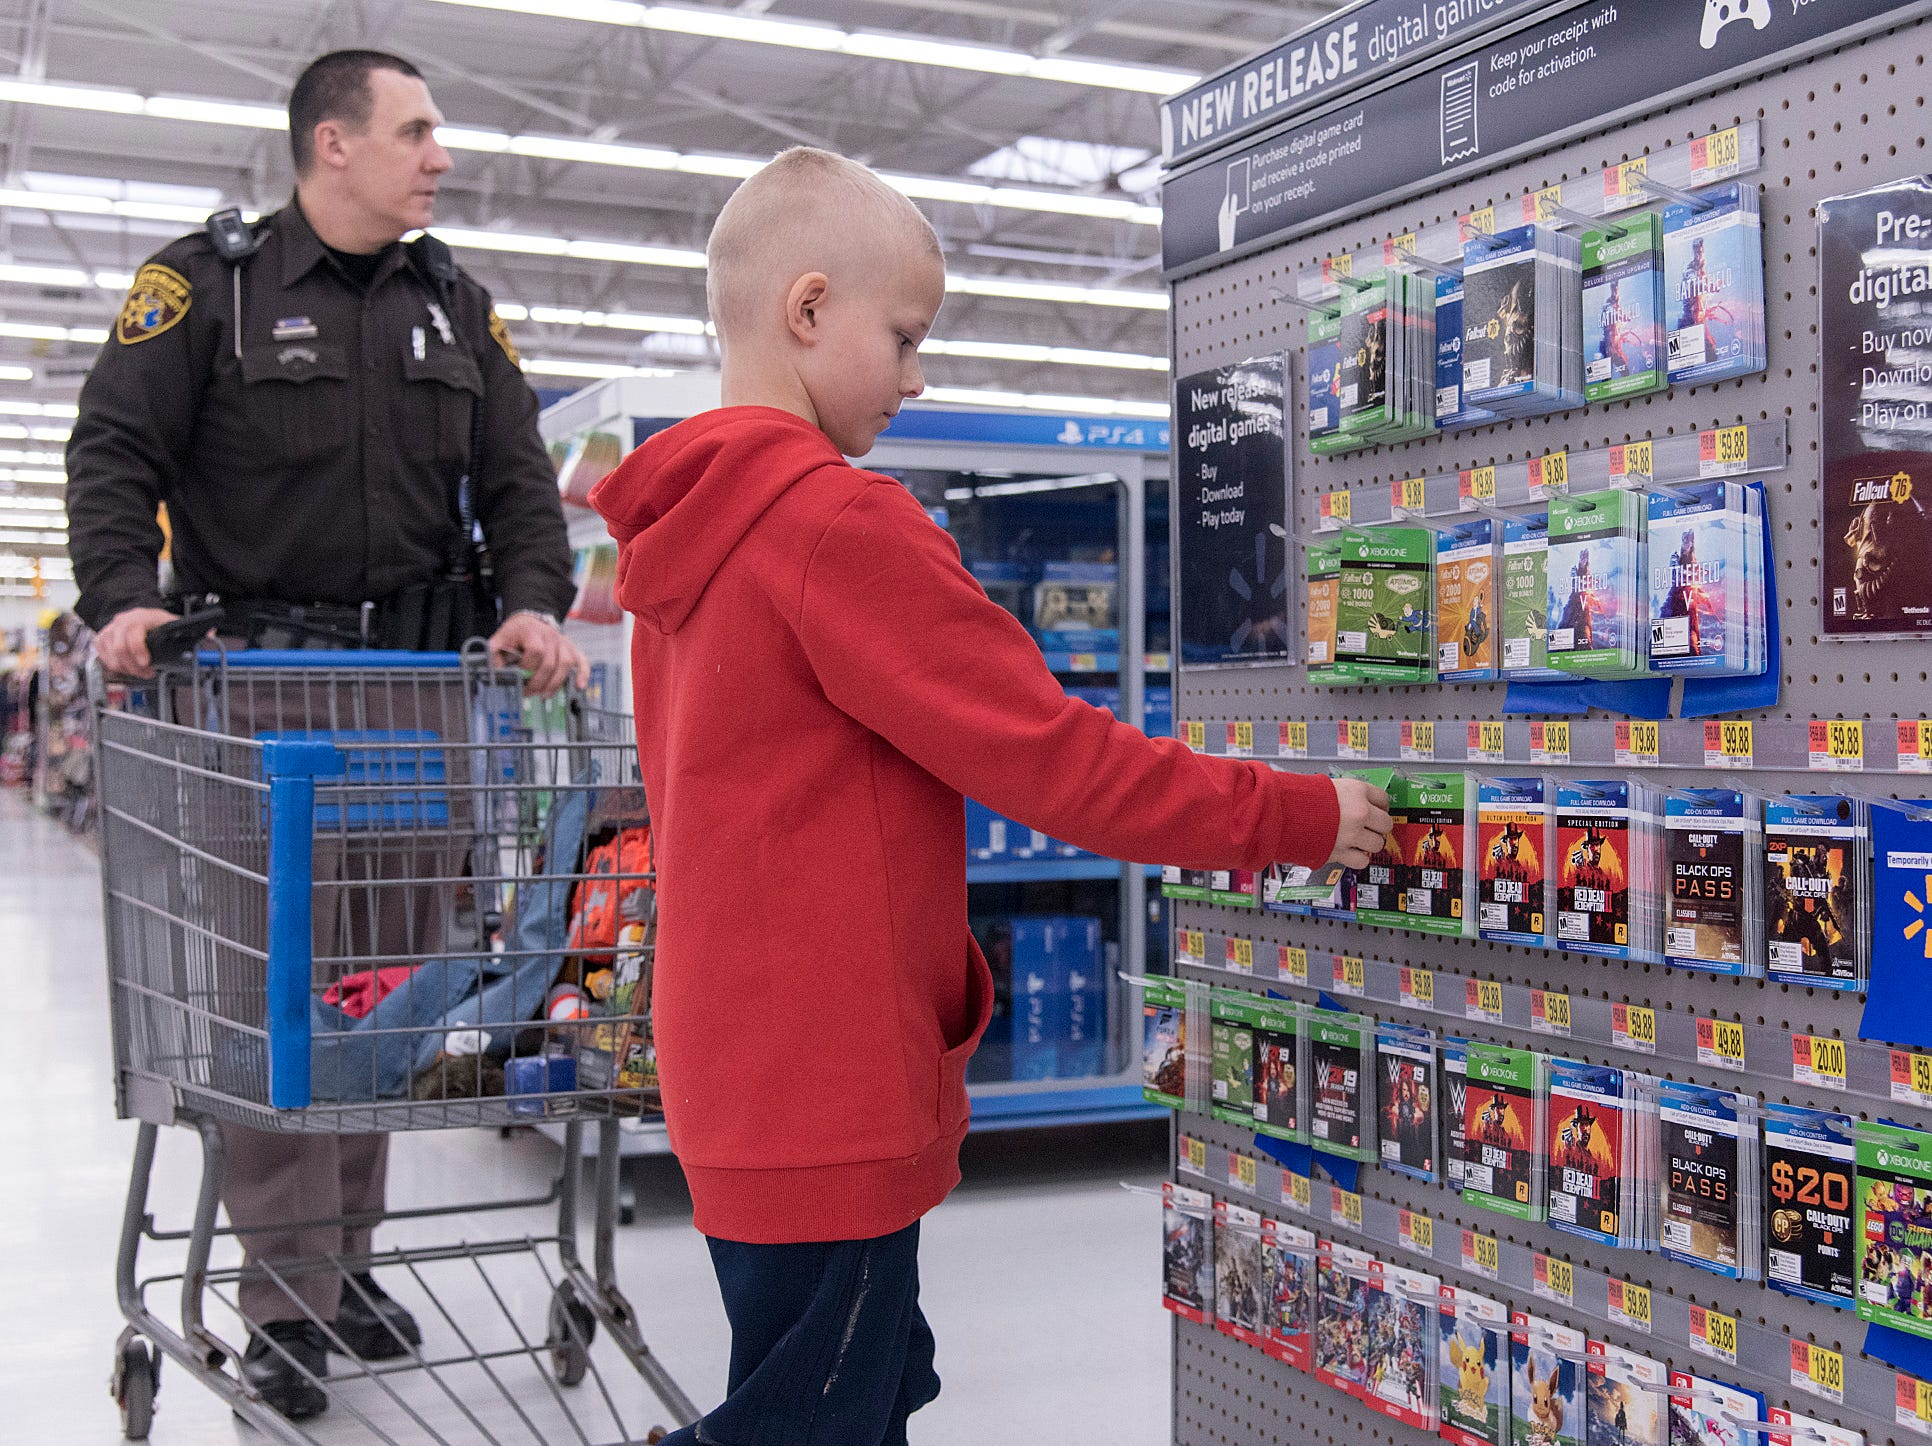 Jayden Paradis looks for gift cards but decides they're too expensive.